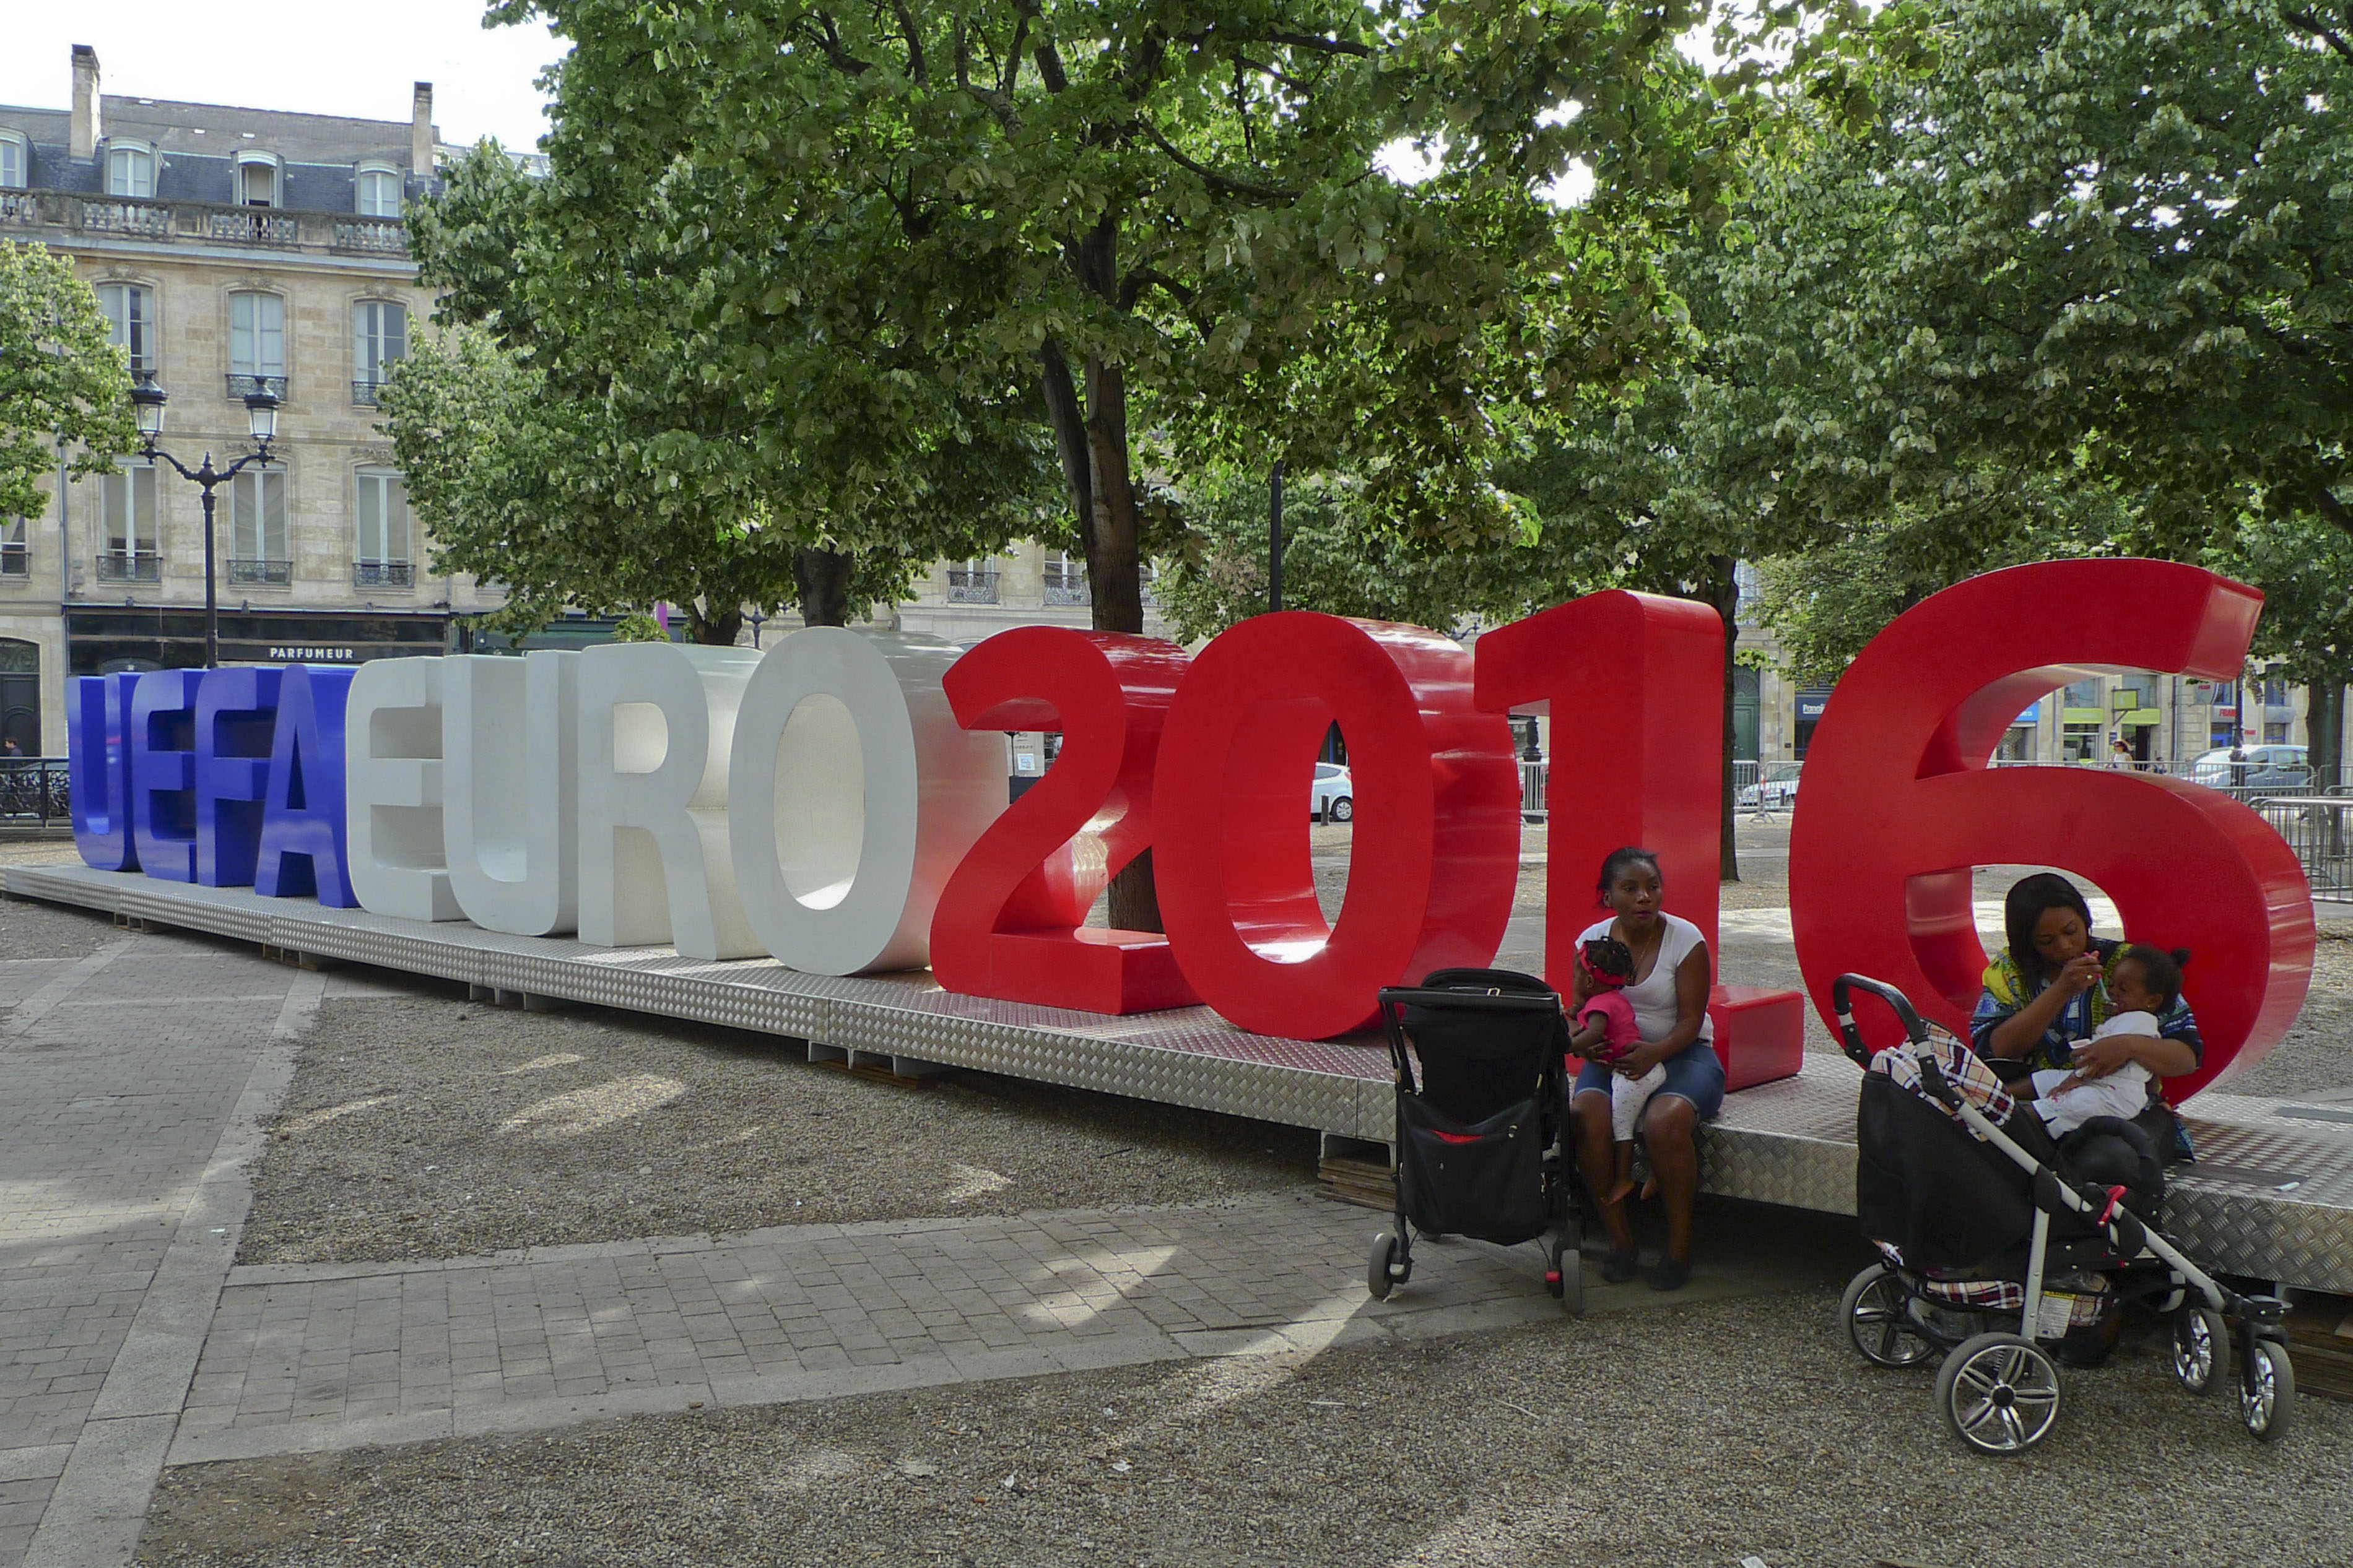 Two women sit with their babies in front of a Uefa Euro 2016 installation, in Bordeaux, France, Thursday, June 9, 2016. The Euro 2016 Soccer Championship starts with the opening match on Friday, June10, 2016 in Paris. (AP Photo/Andrew Medichini)